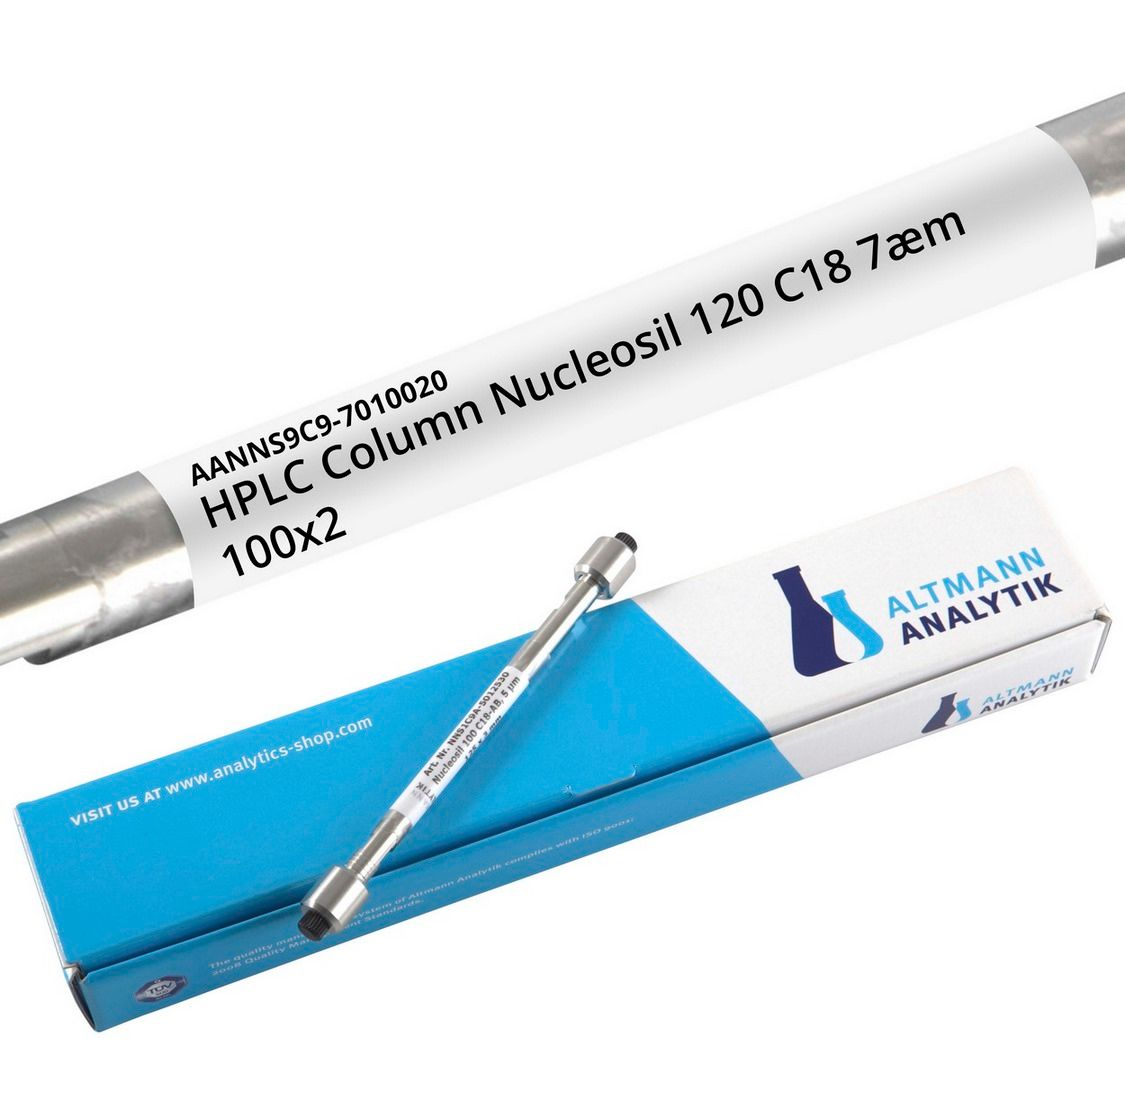 HPLC Column Nucleosil 120 C18 7µm 100x2 mm, endcapped, 120A